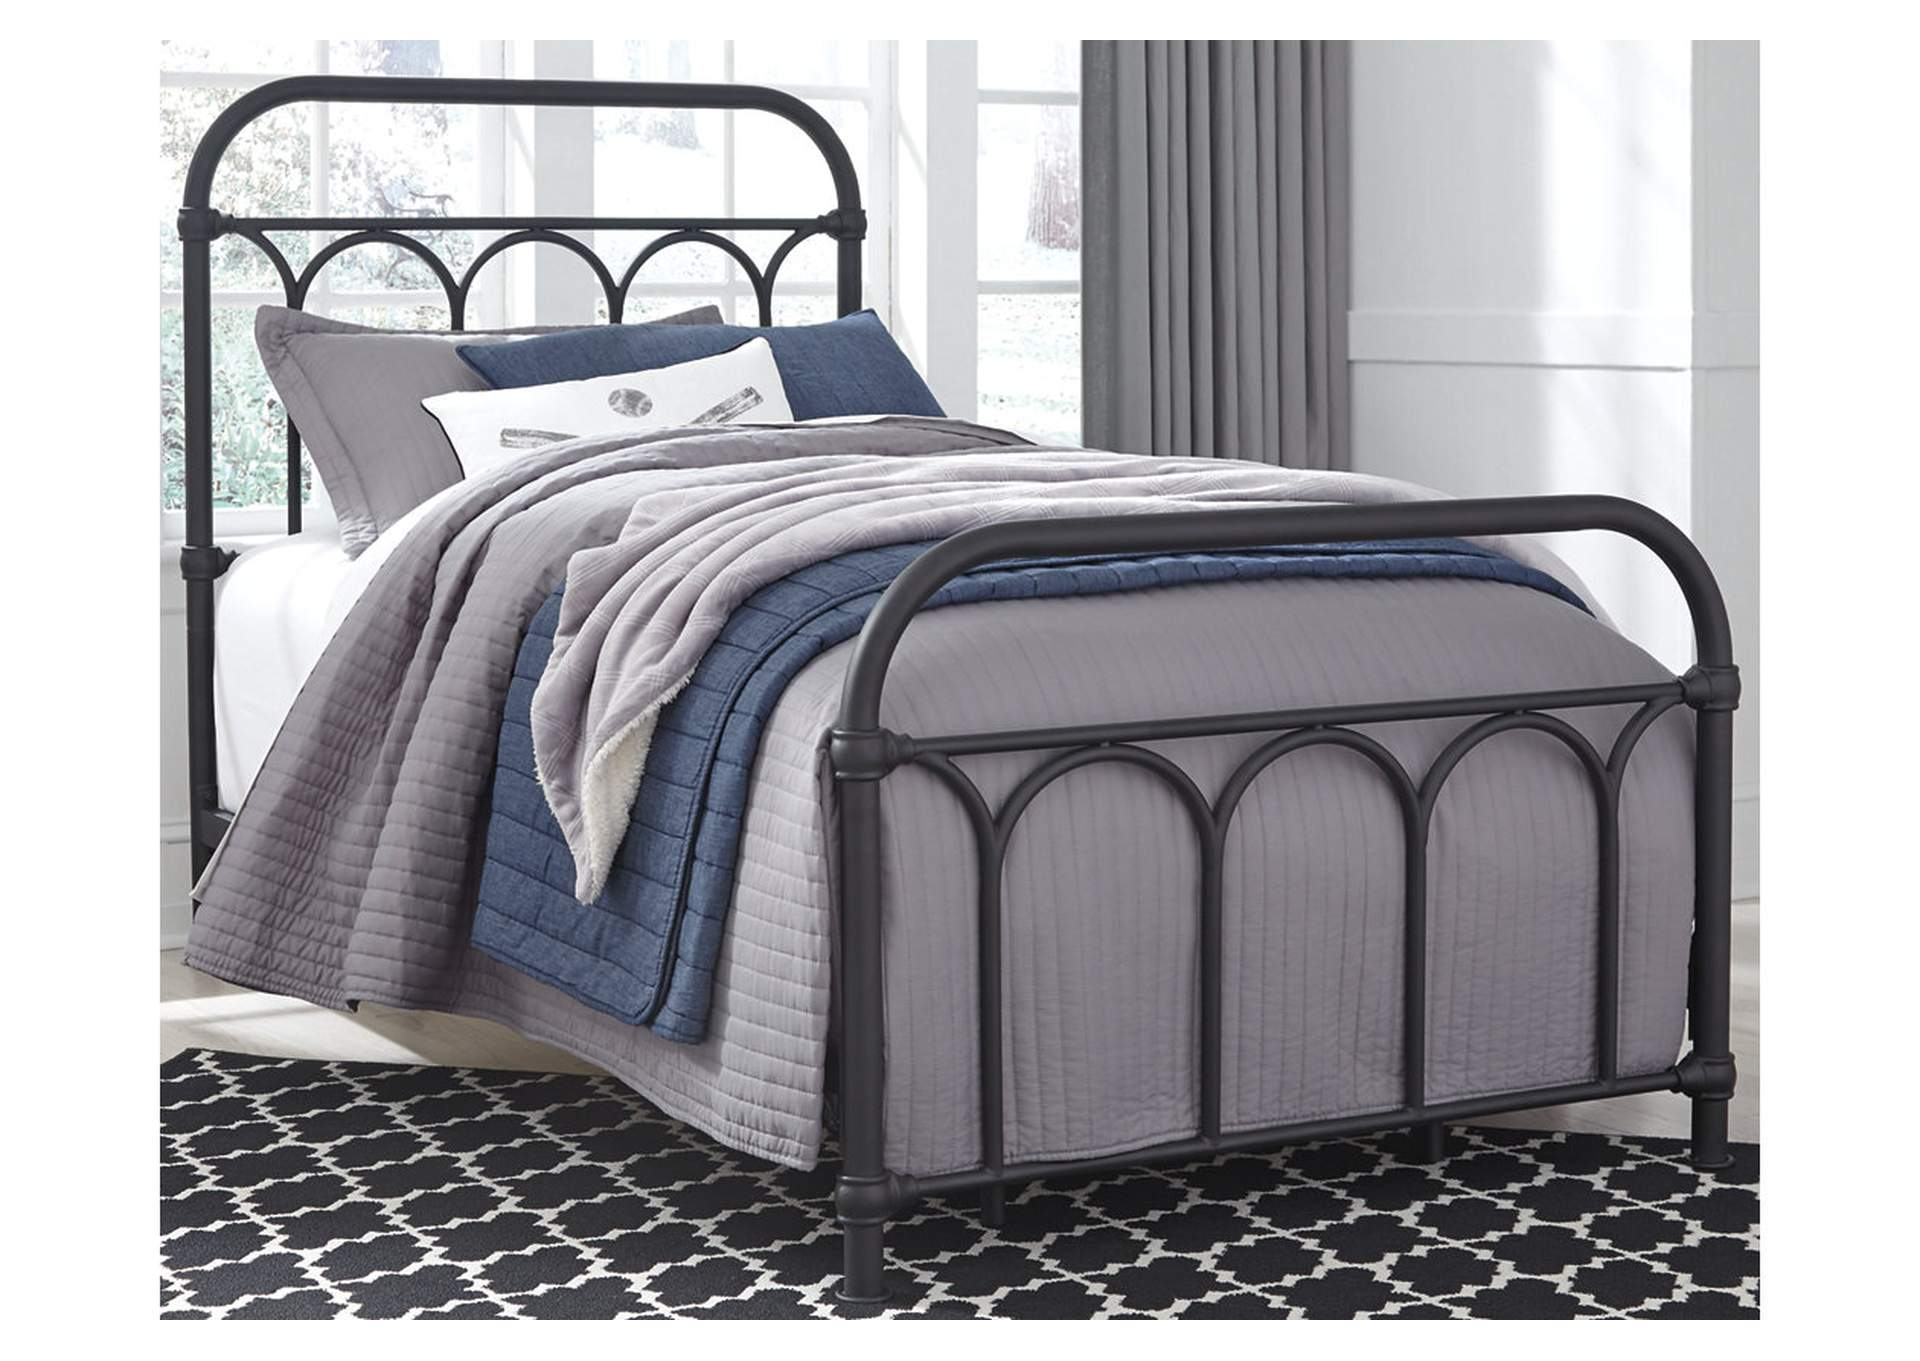 Nashburg Twin Metal Bed,Signature Design By Ashley